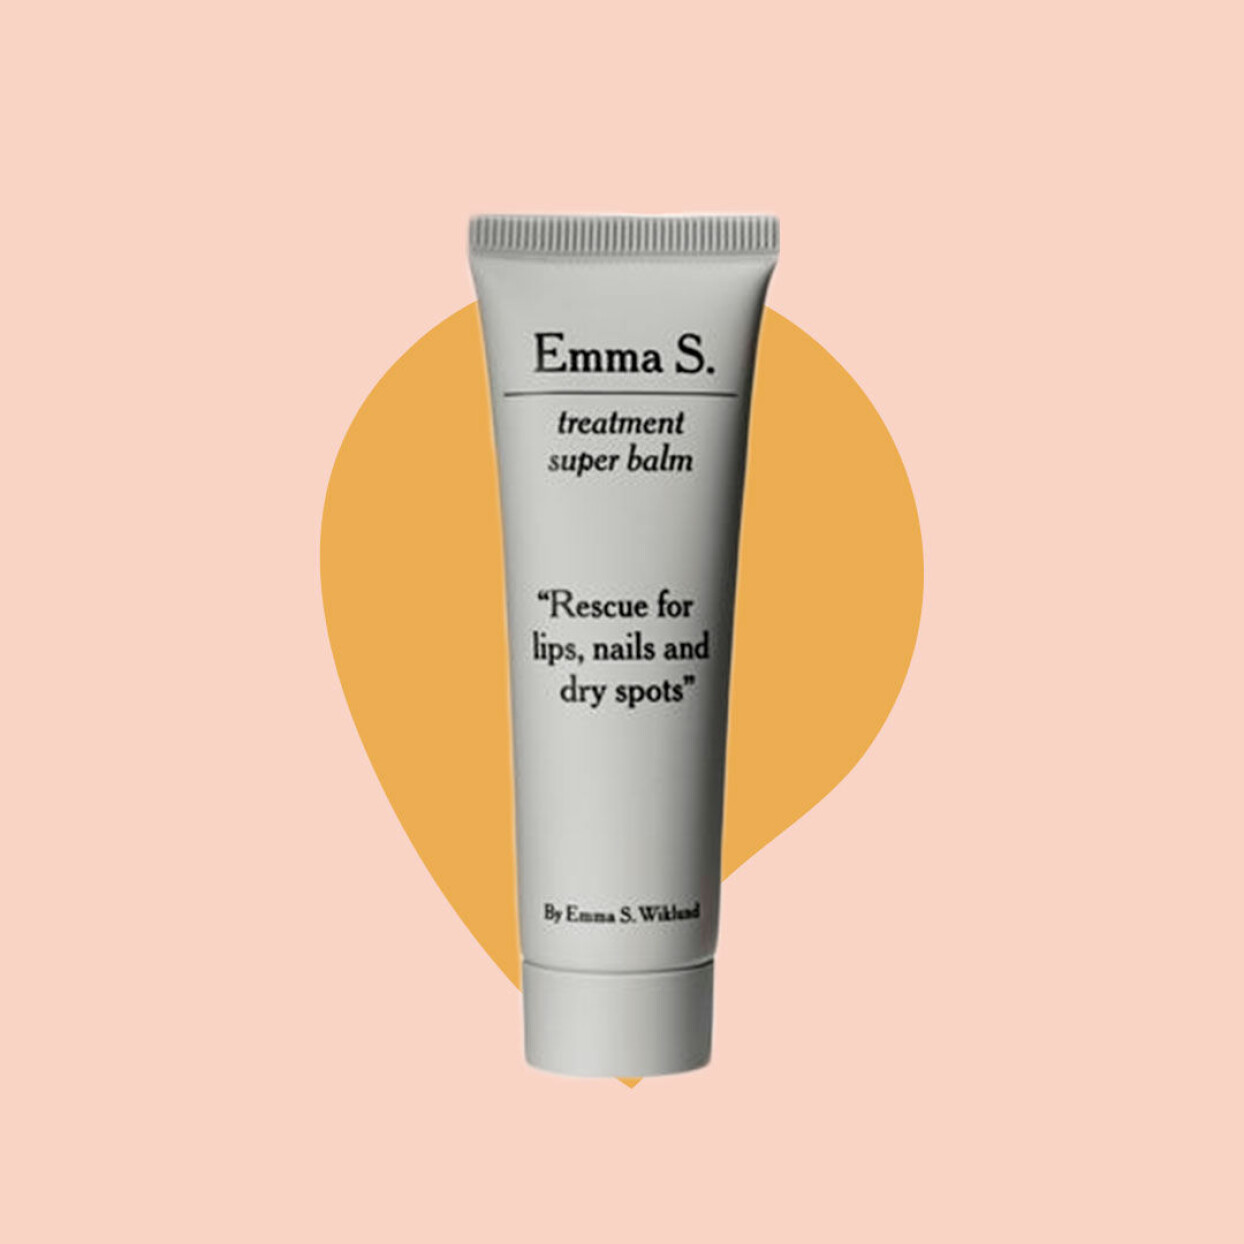 Emma S. Treatment super balm